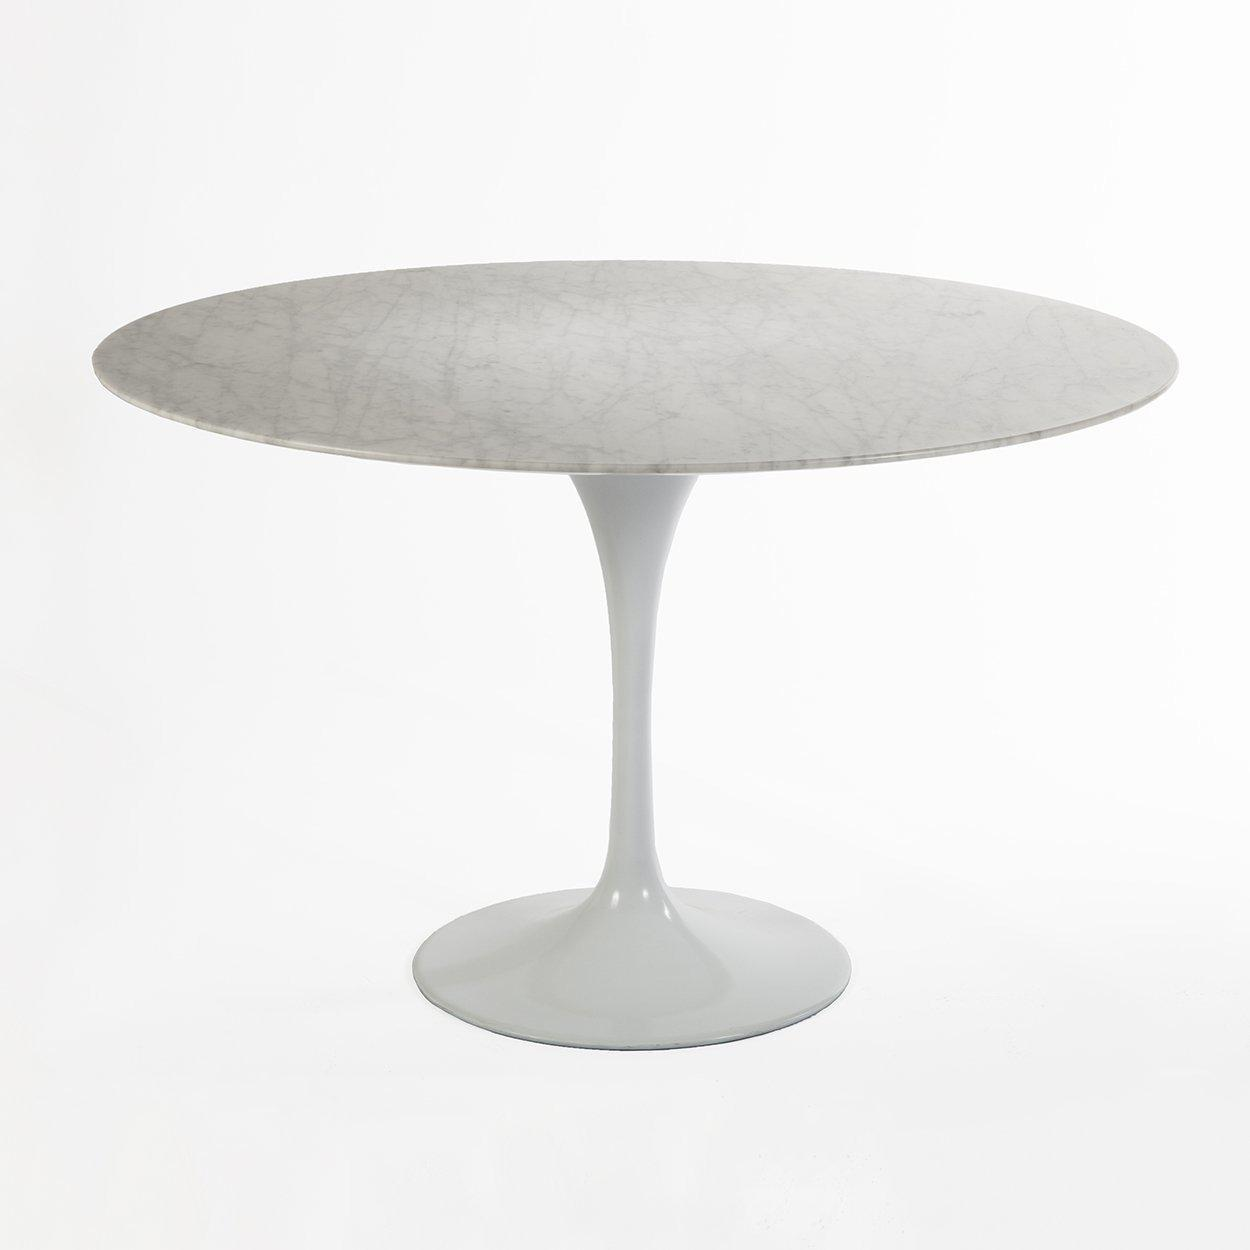 [RT335RWHITE] The 47 Round Saarinen Tulip Dining Table